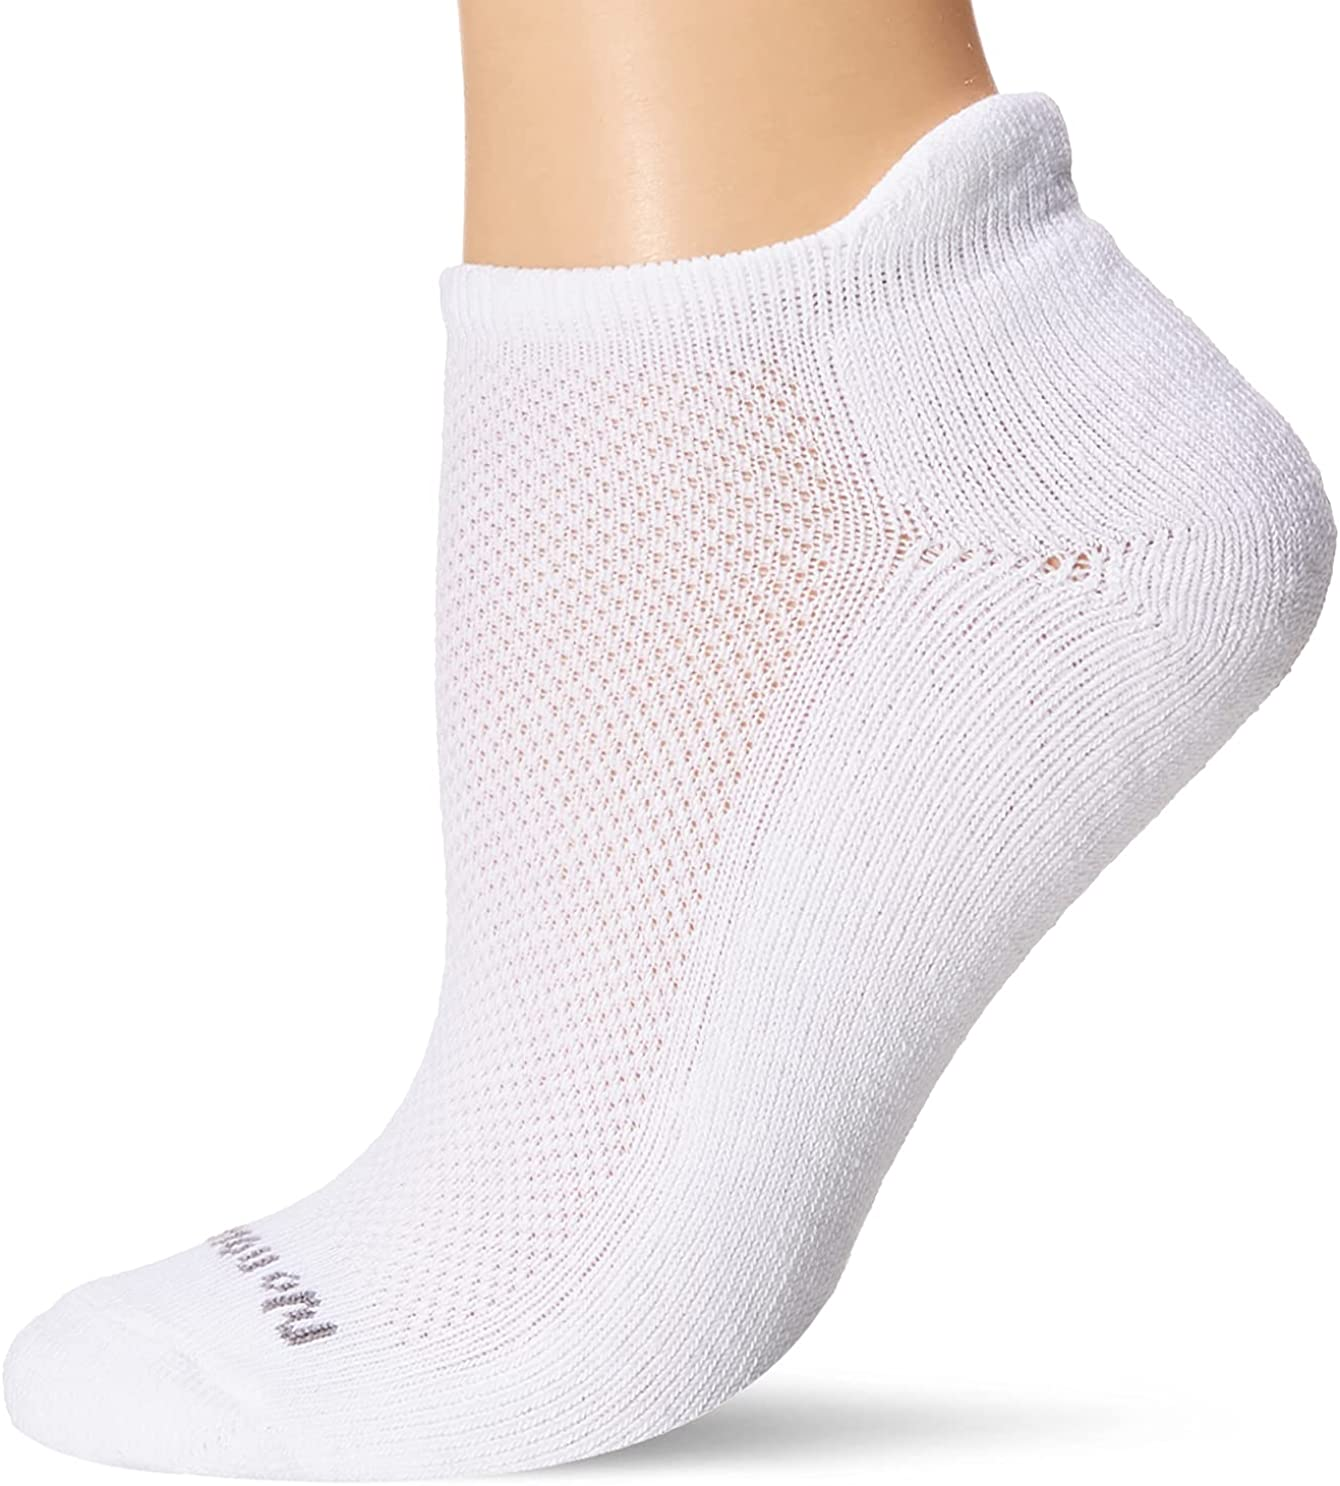 No Nonsense Women's Mesh No Show Socks with Back Tab, White, One Size (3-Pack)